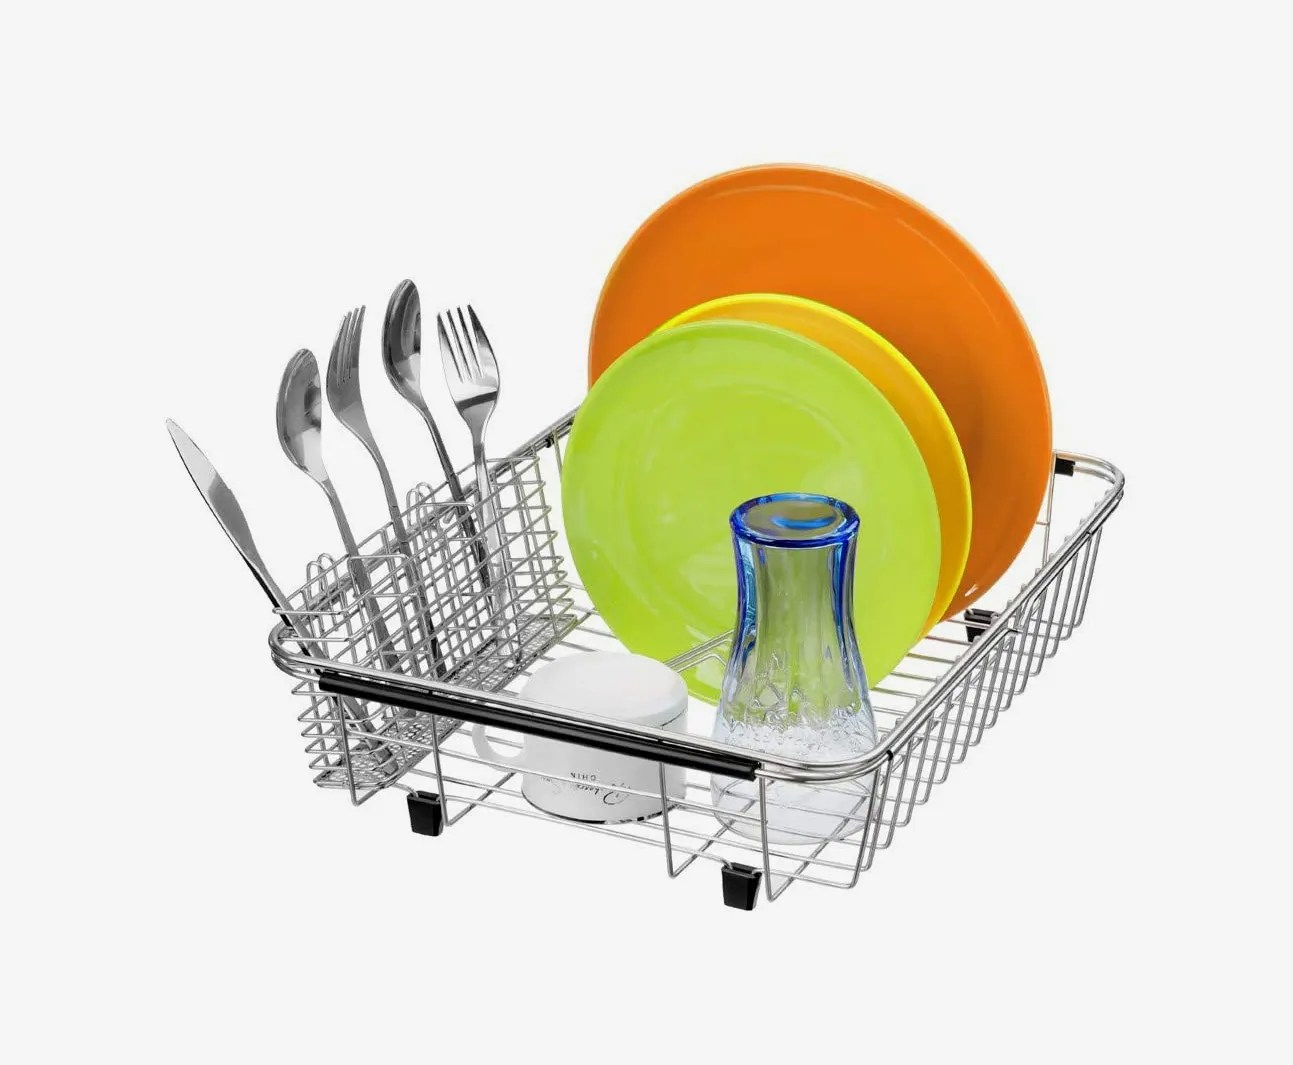 sanno stainless steel dish drying rack